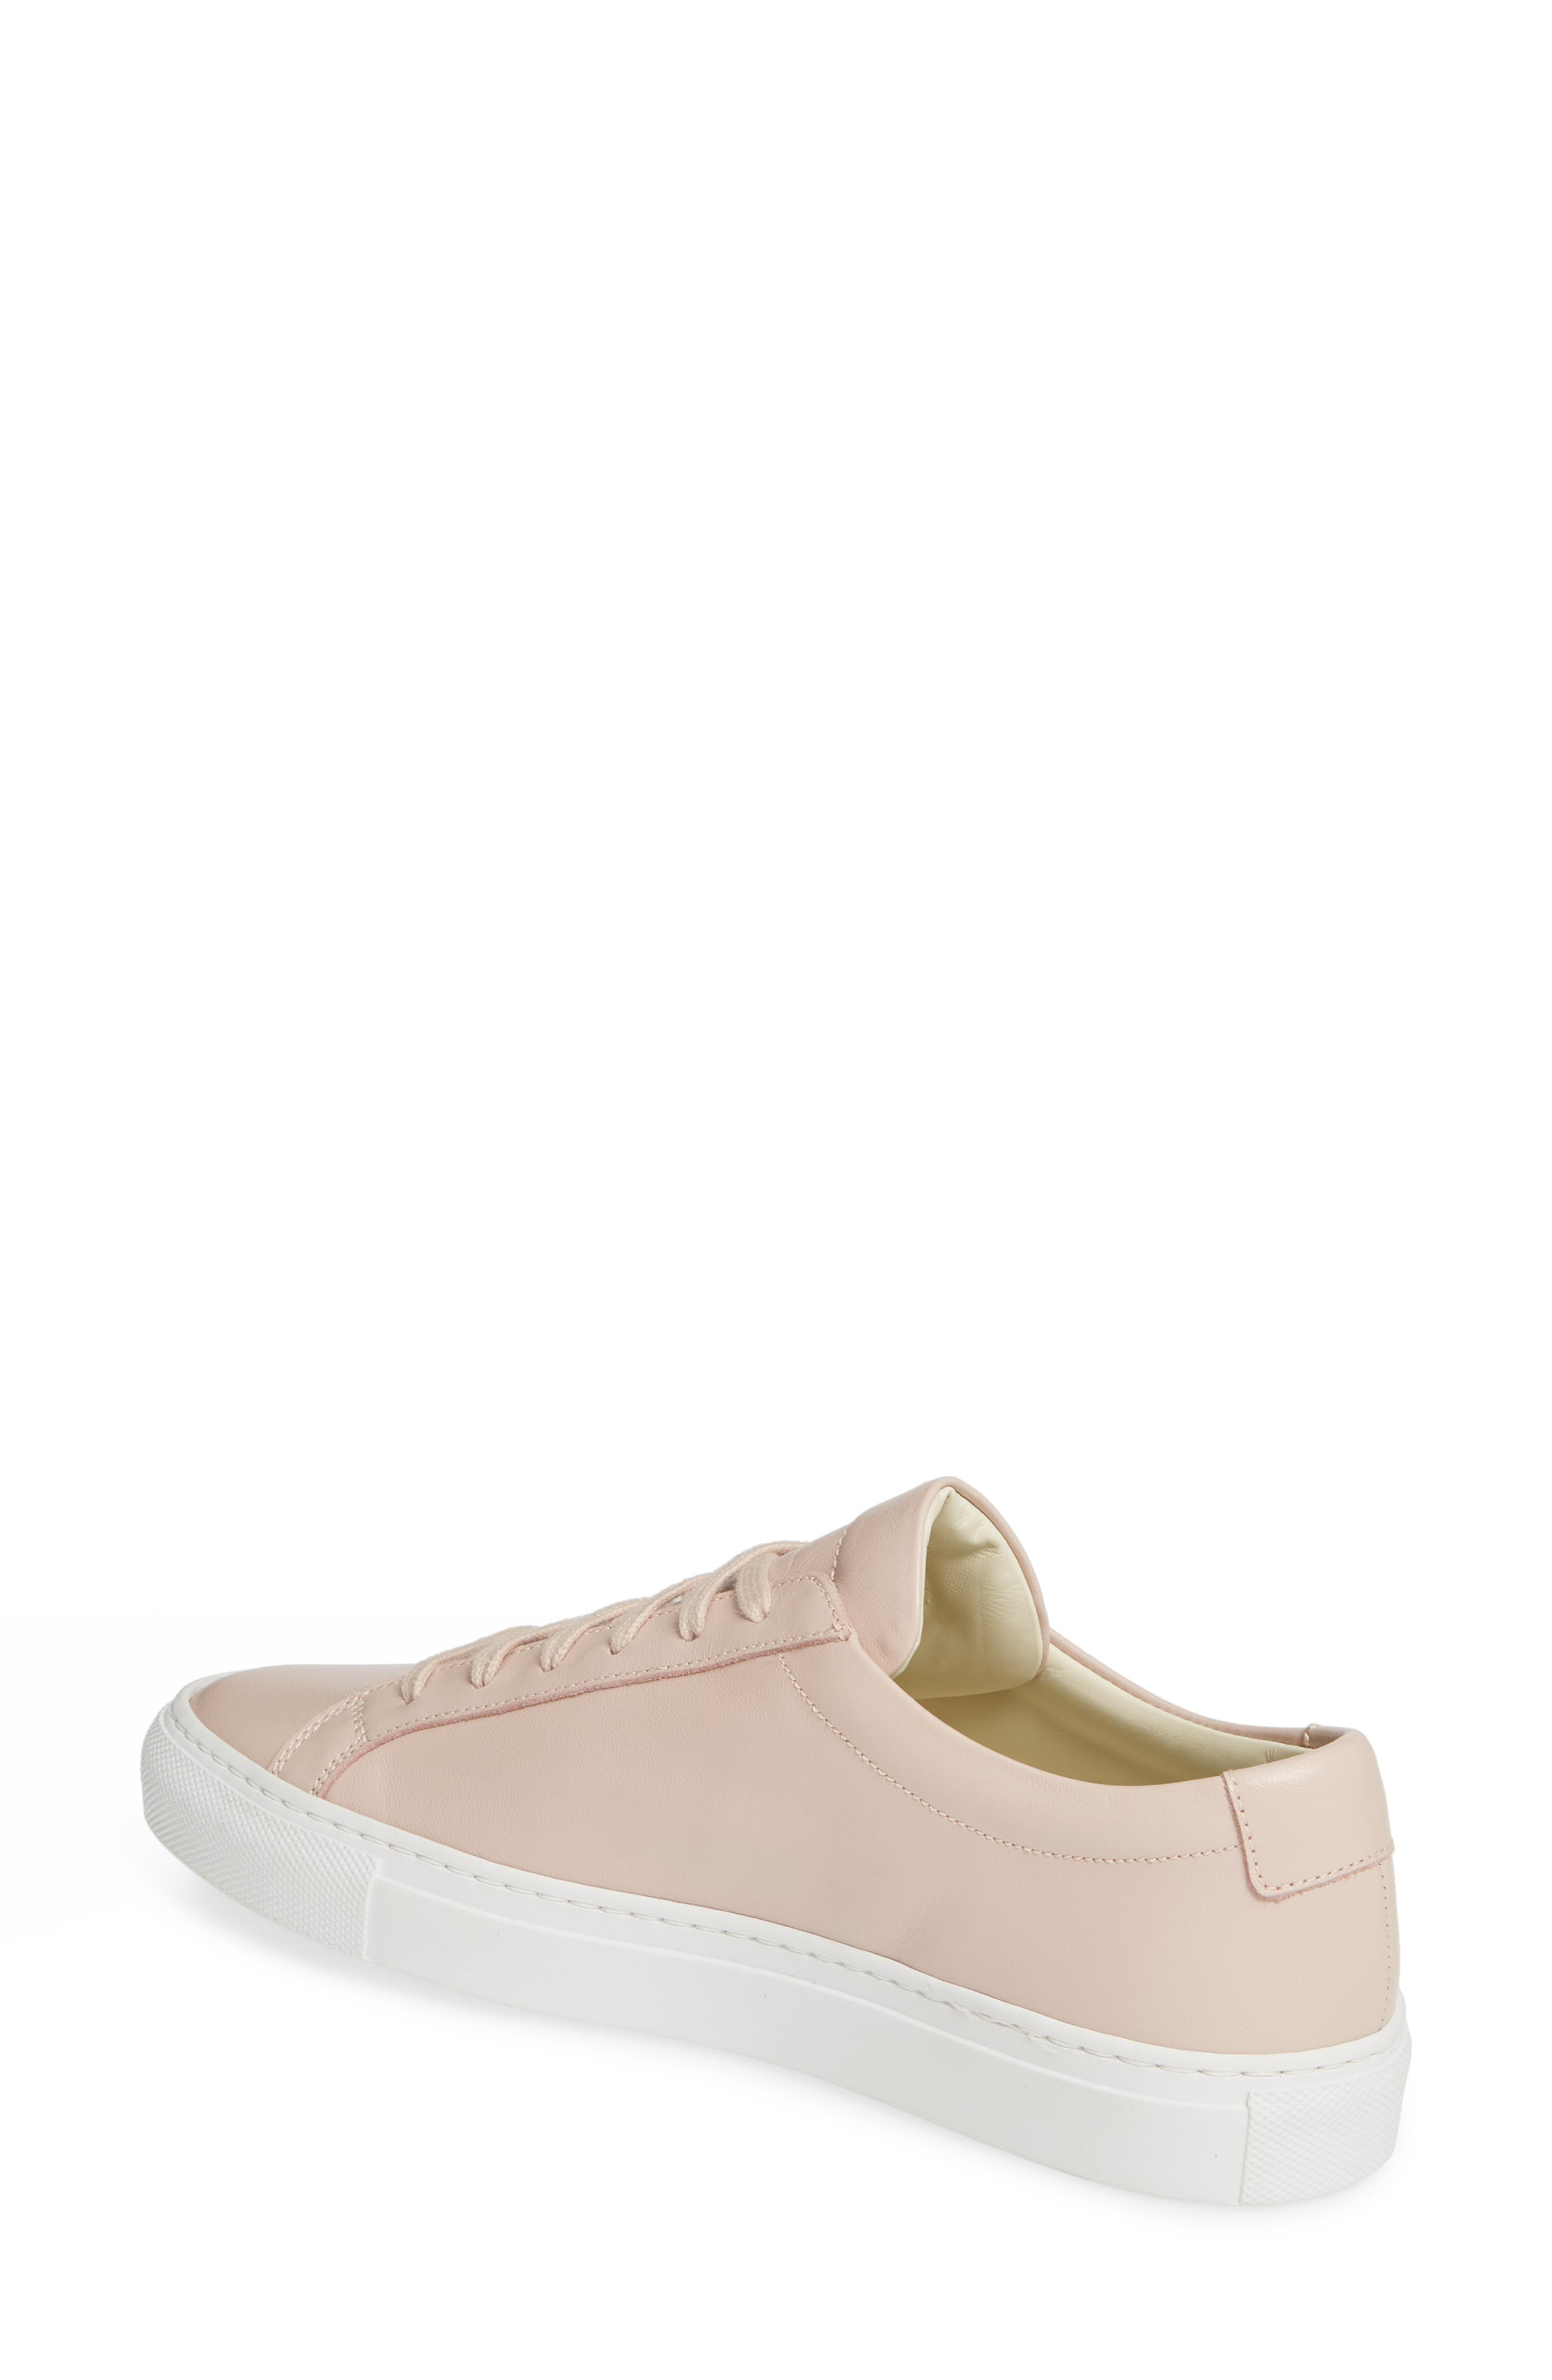 COMMON PROJECTS,                             Original Achilles Sneaker,                             Alternate thumbnail 2, color,                             BLUSH